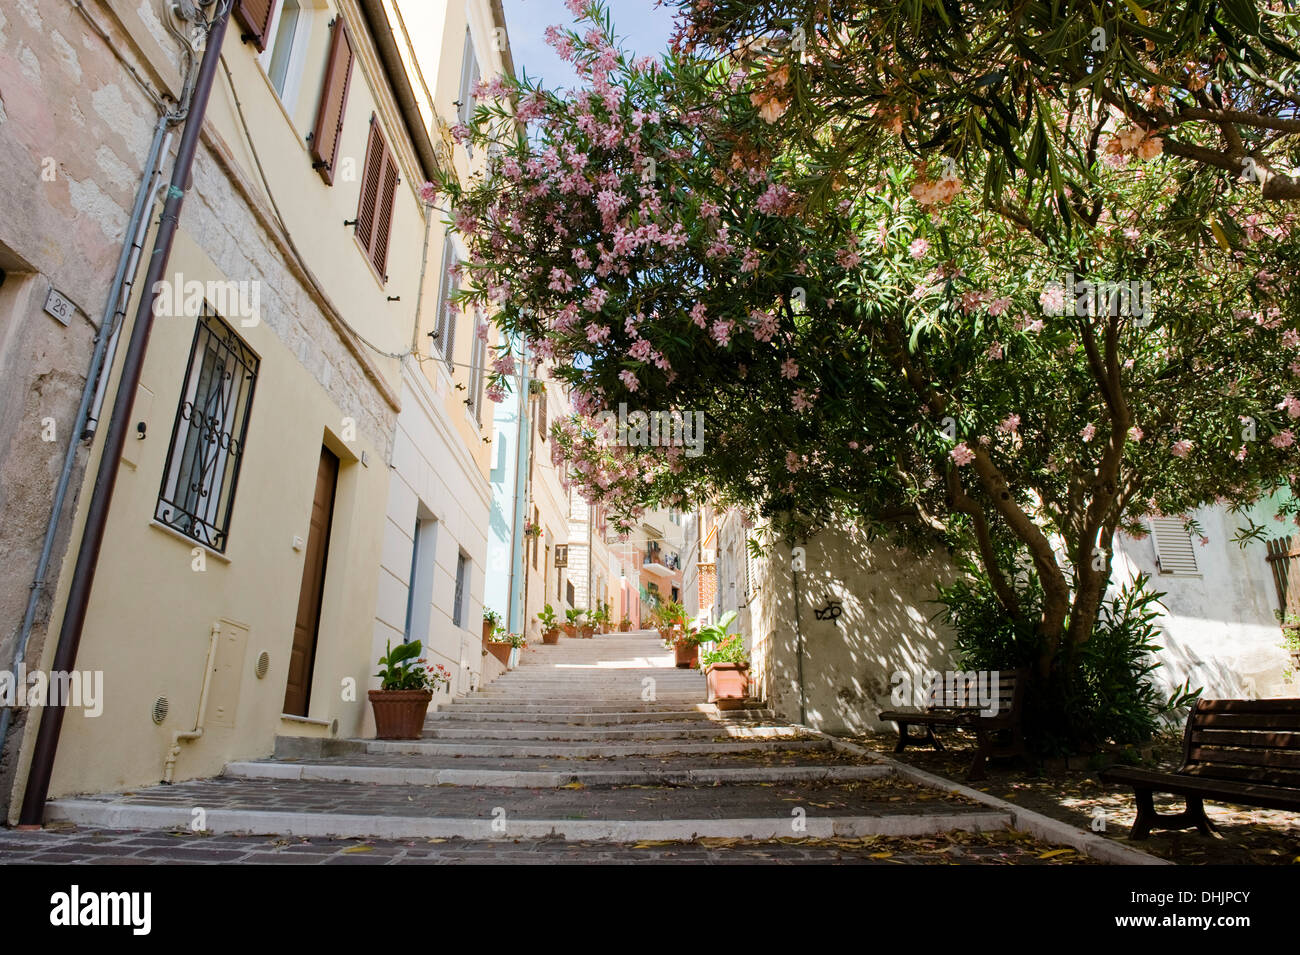 Alley in Numana, Marches, Marken, Italy - Stock Image